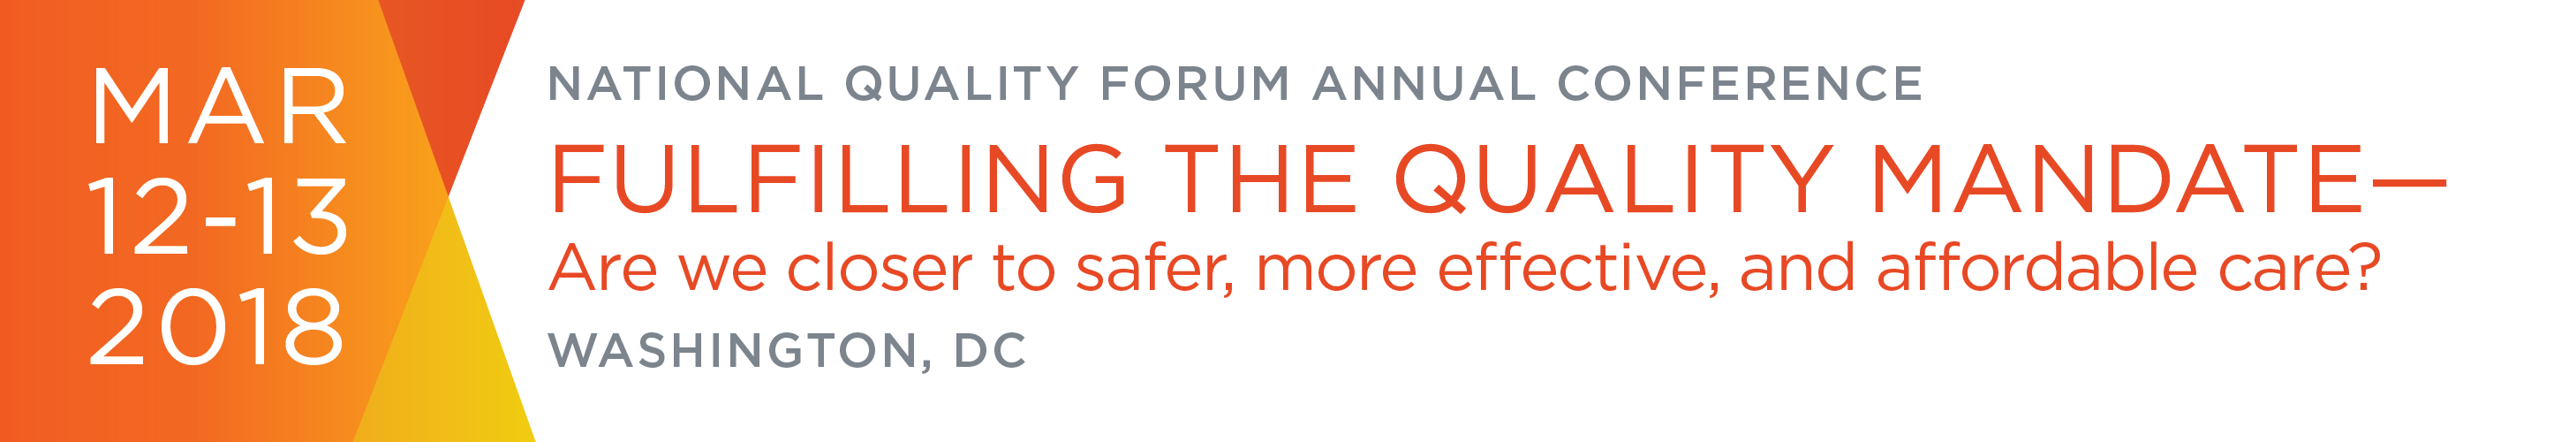 "2018 NQF Annual Conference ""Fulfilling the Quality Mandate - Are we closer to safer, more effective, and affordable care?"""